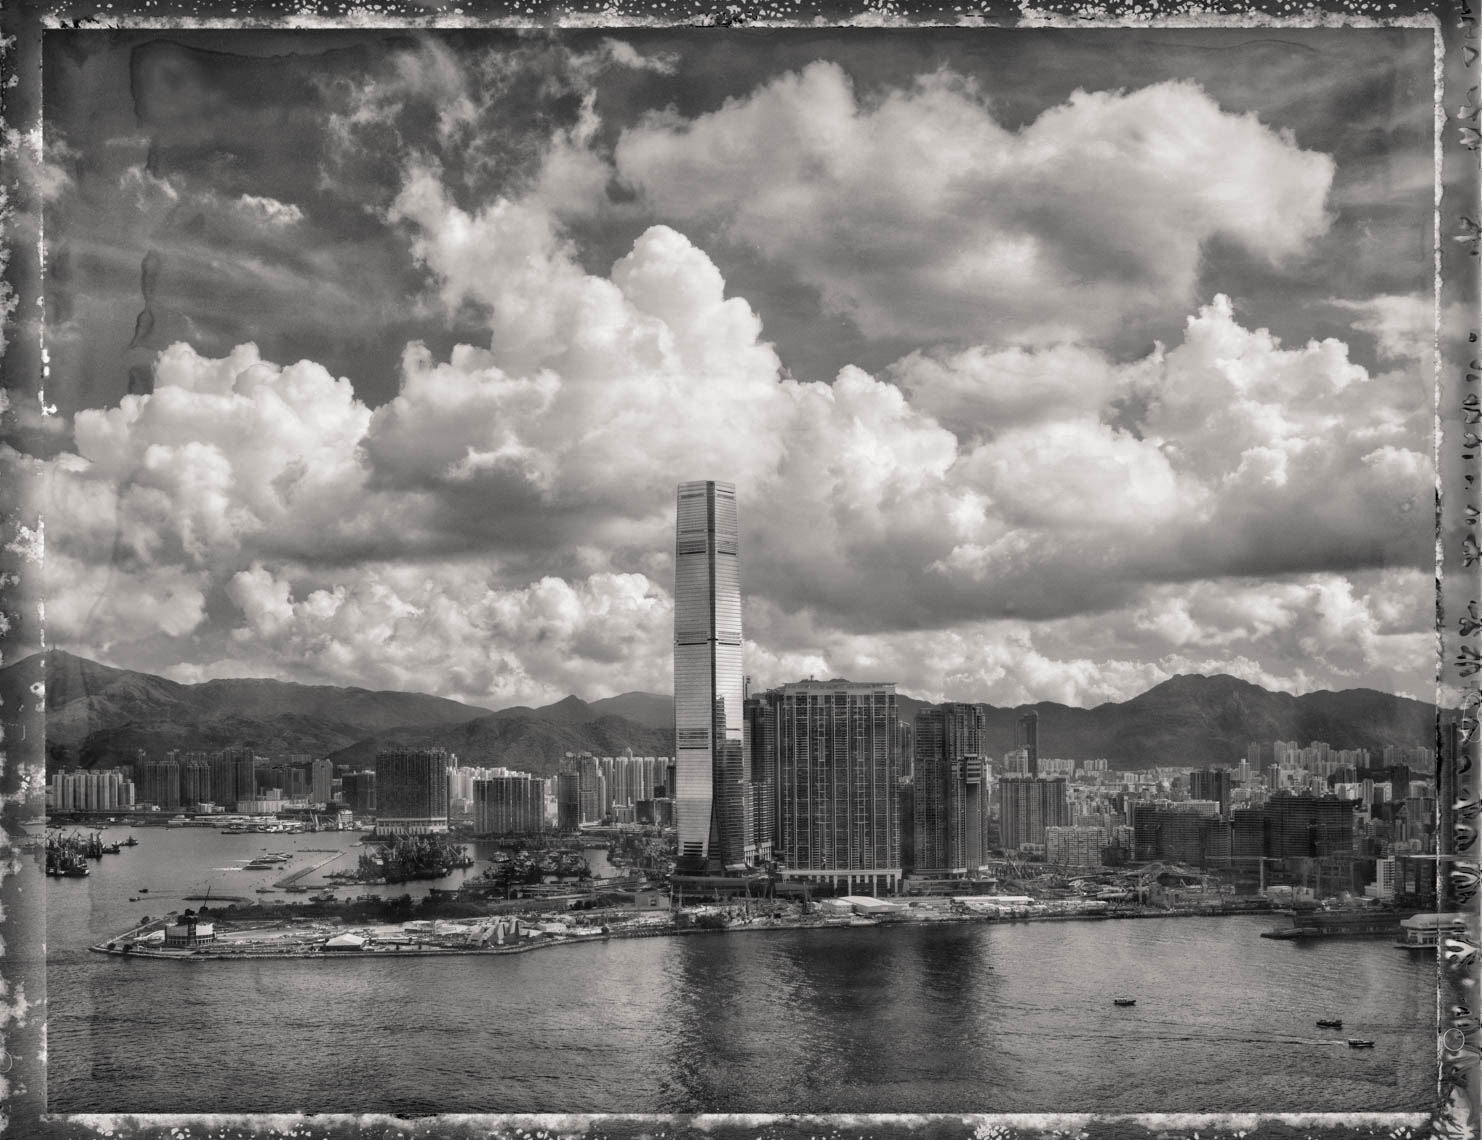 West Kowloon Hong Kong ICC